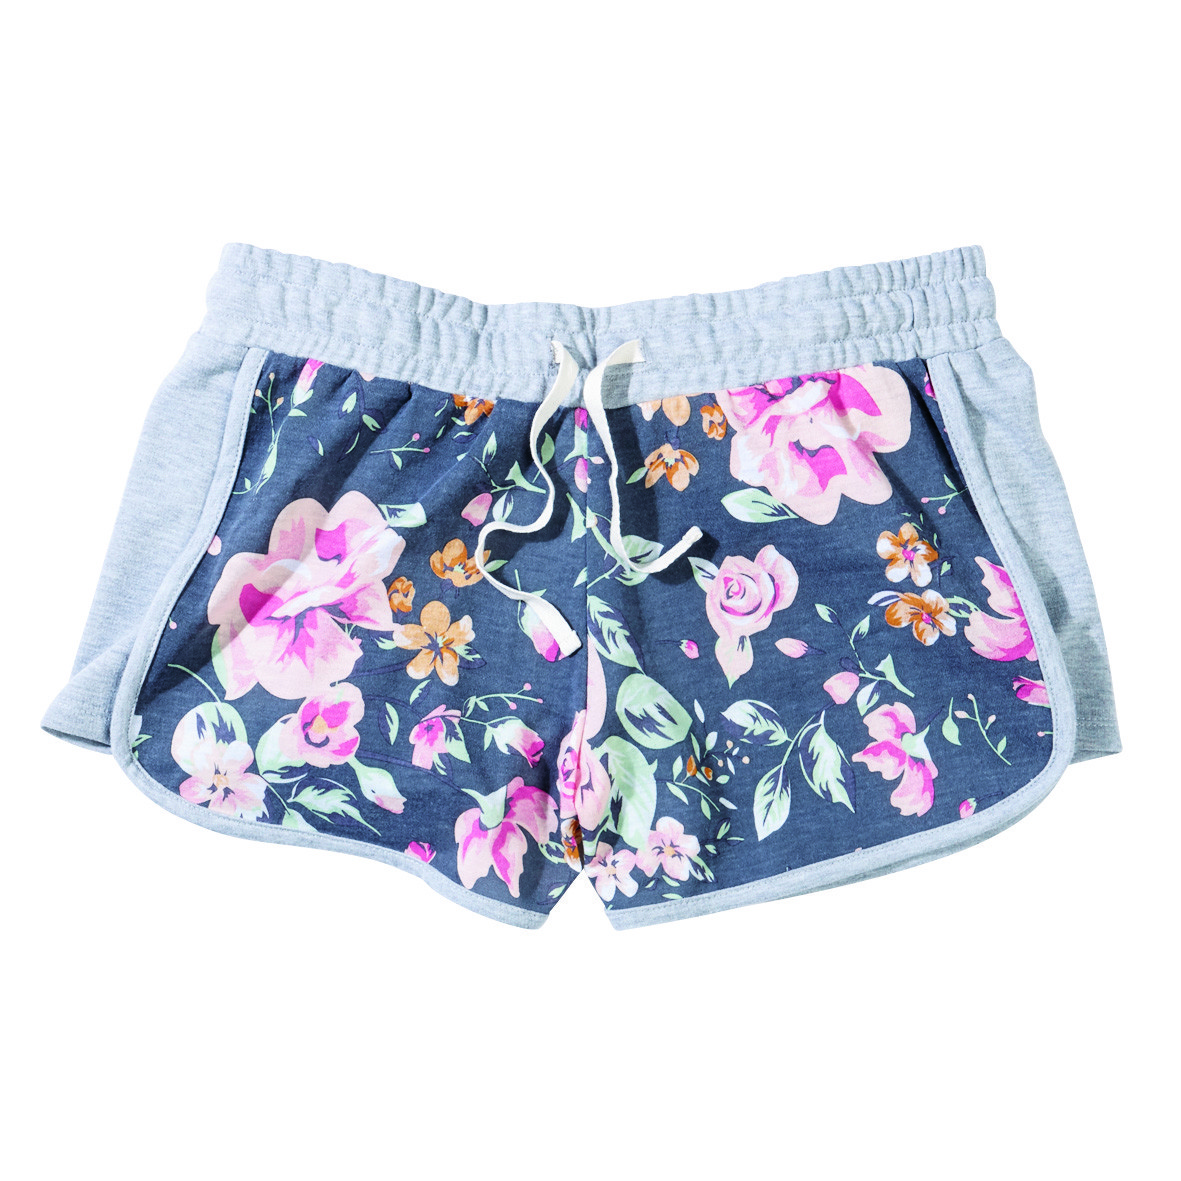 The Warehouse Garage Floral Track Shorts $20